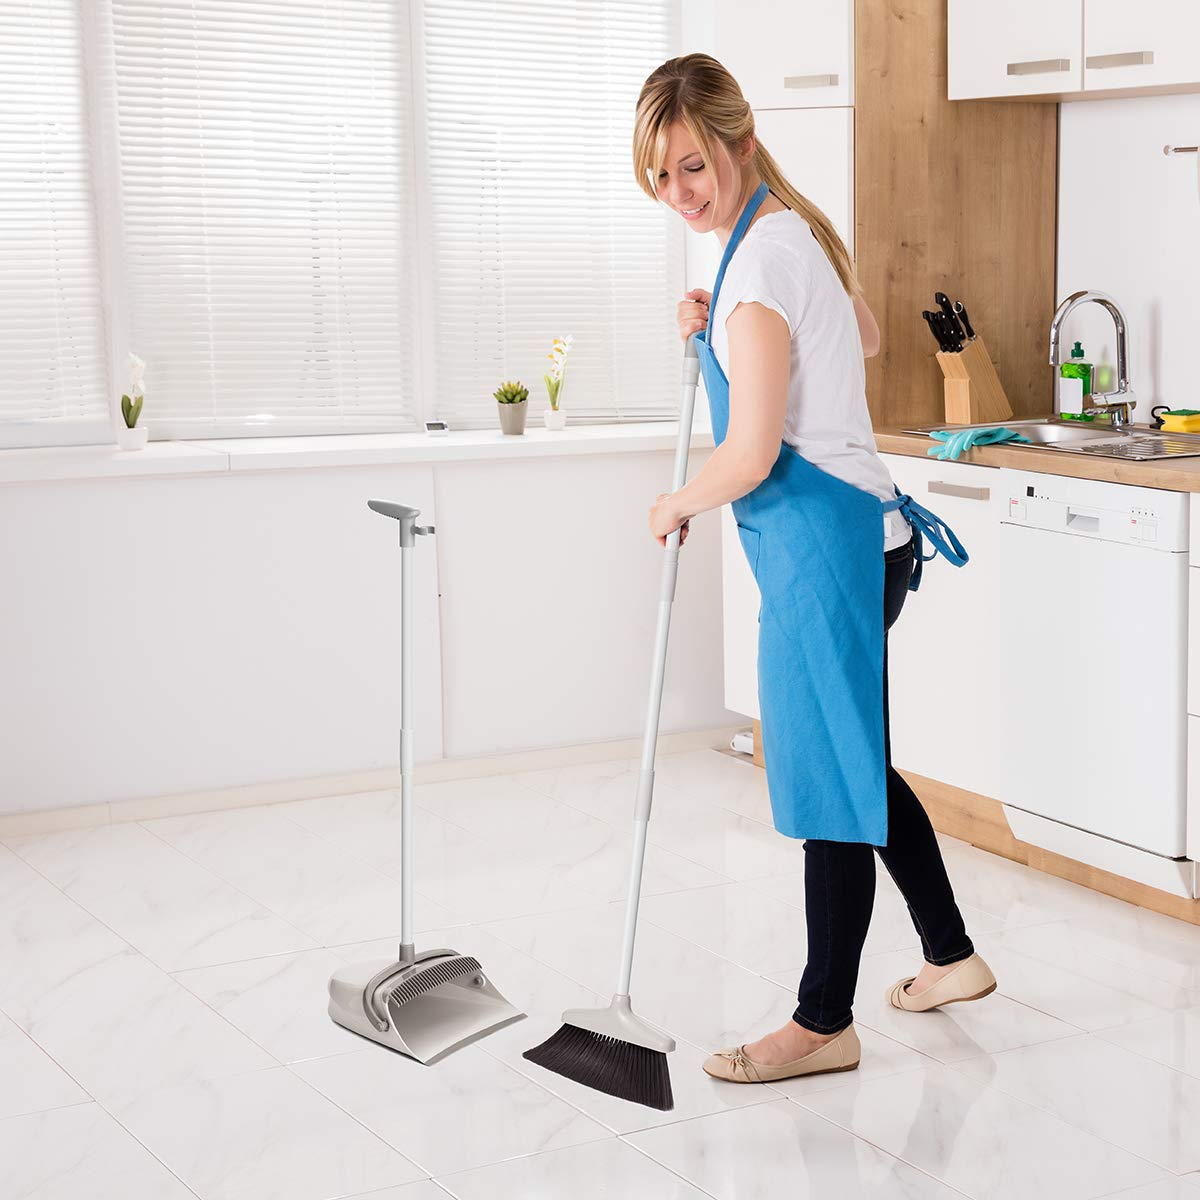 Broom and Dustpan Set, CQT Dust Pan and Broom with Long Handle for Home Kitchen Industry Lobby Floor Sweeping Upright Stand Up Dustpan Cleans Broom Combo by CQT (Image #2)